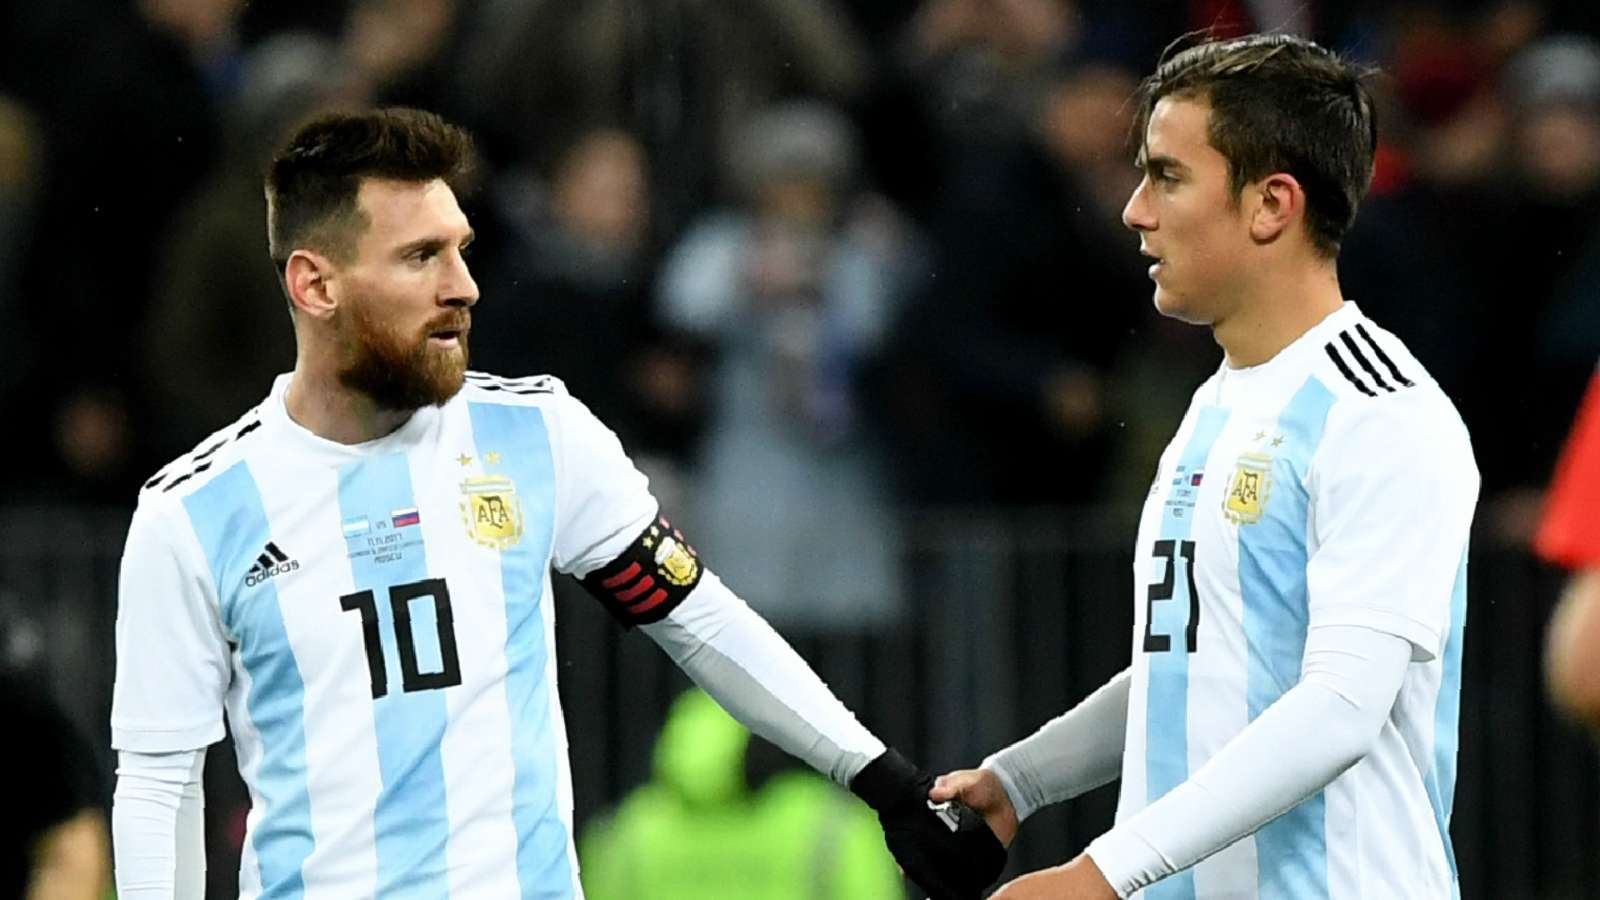 A flop next to Messi AND Ronaldo: Why Dybala has failed alongside both superstars - Bóng Đá